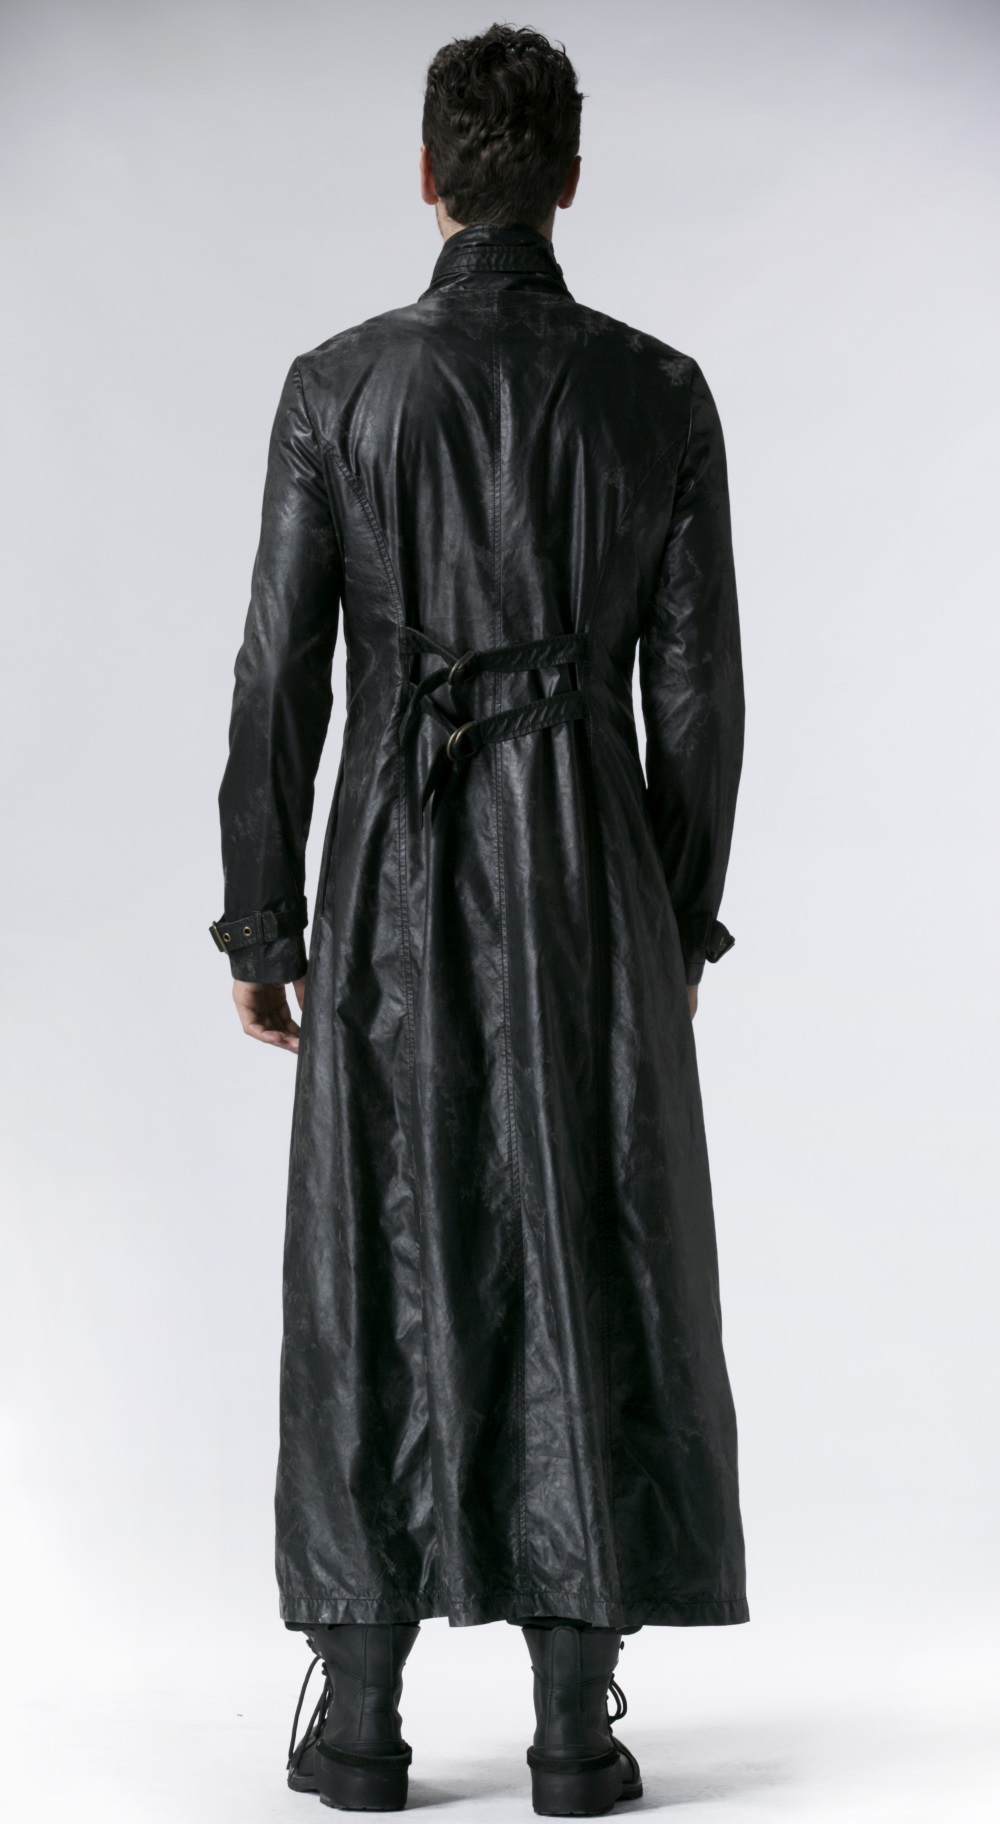 Gothique 'reaper Of Long Manteau Homme Darkness' qUMSVpzG